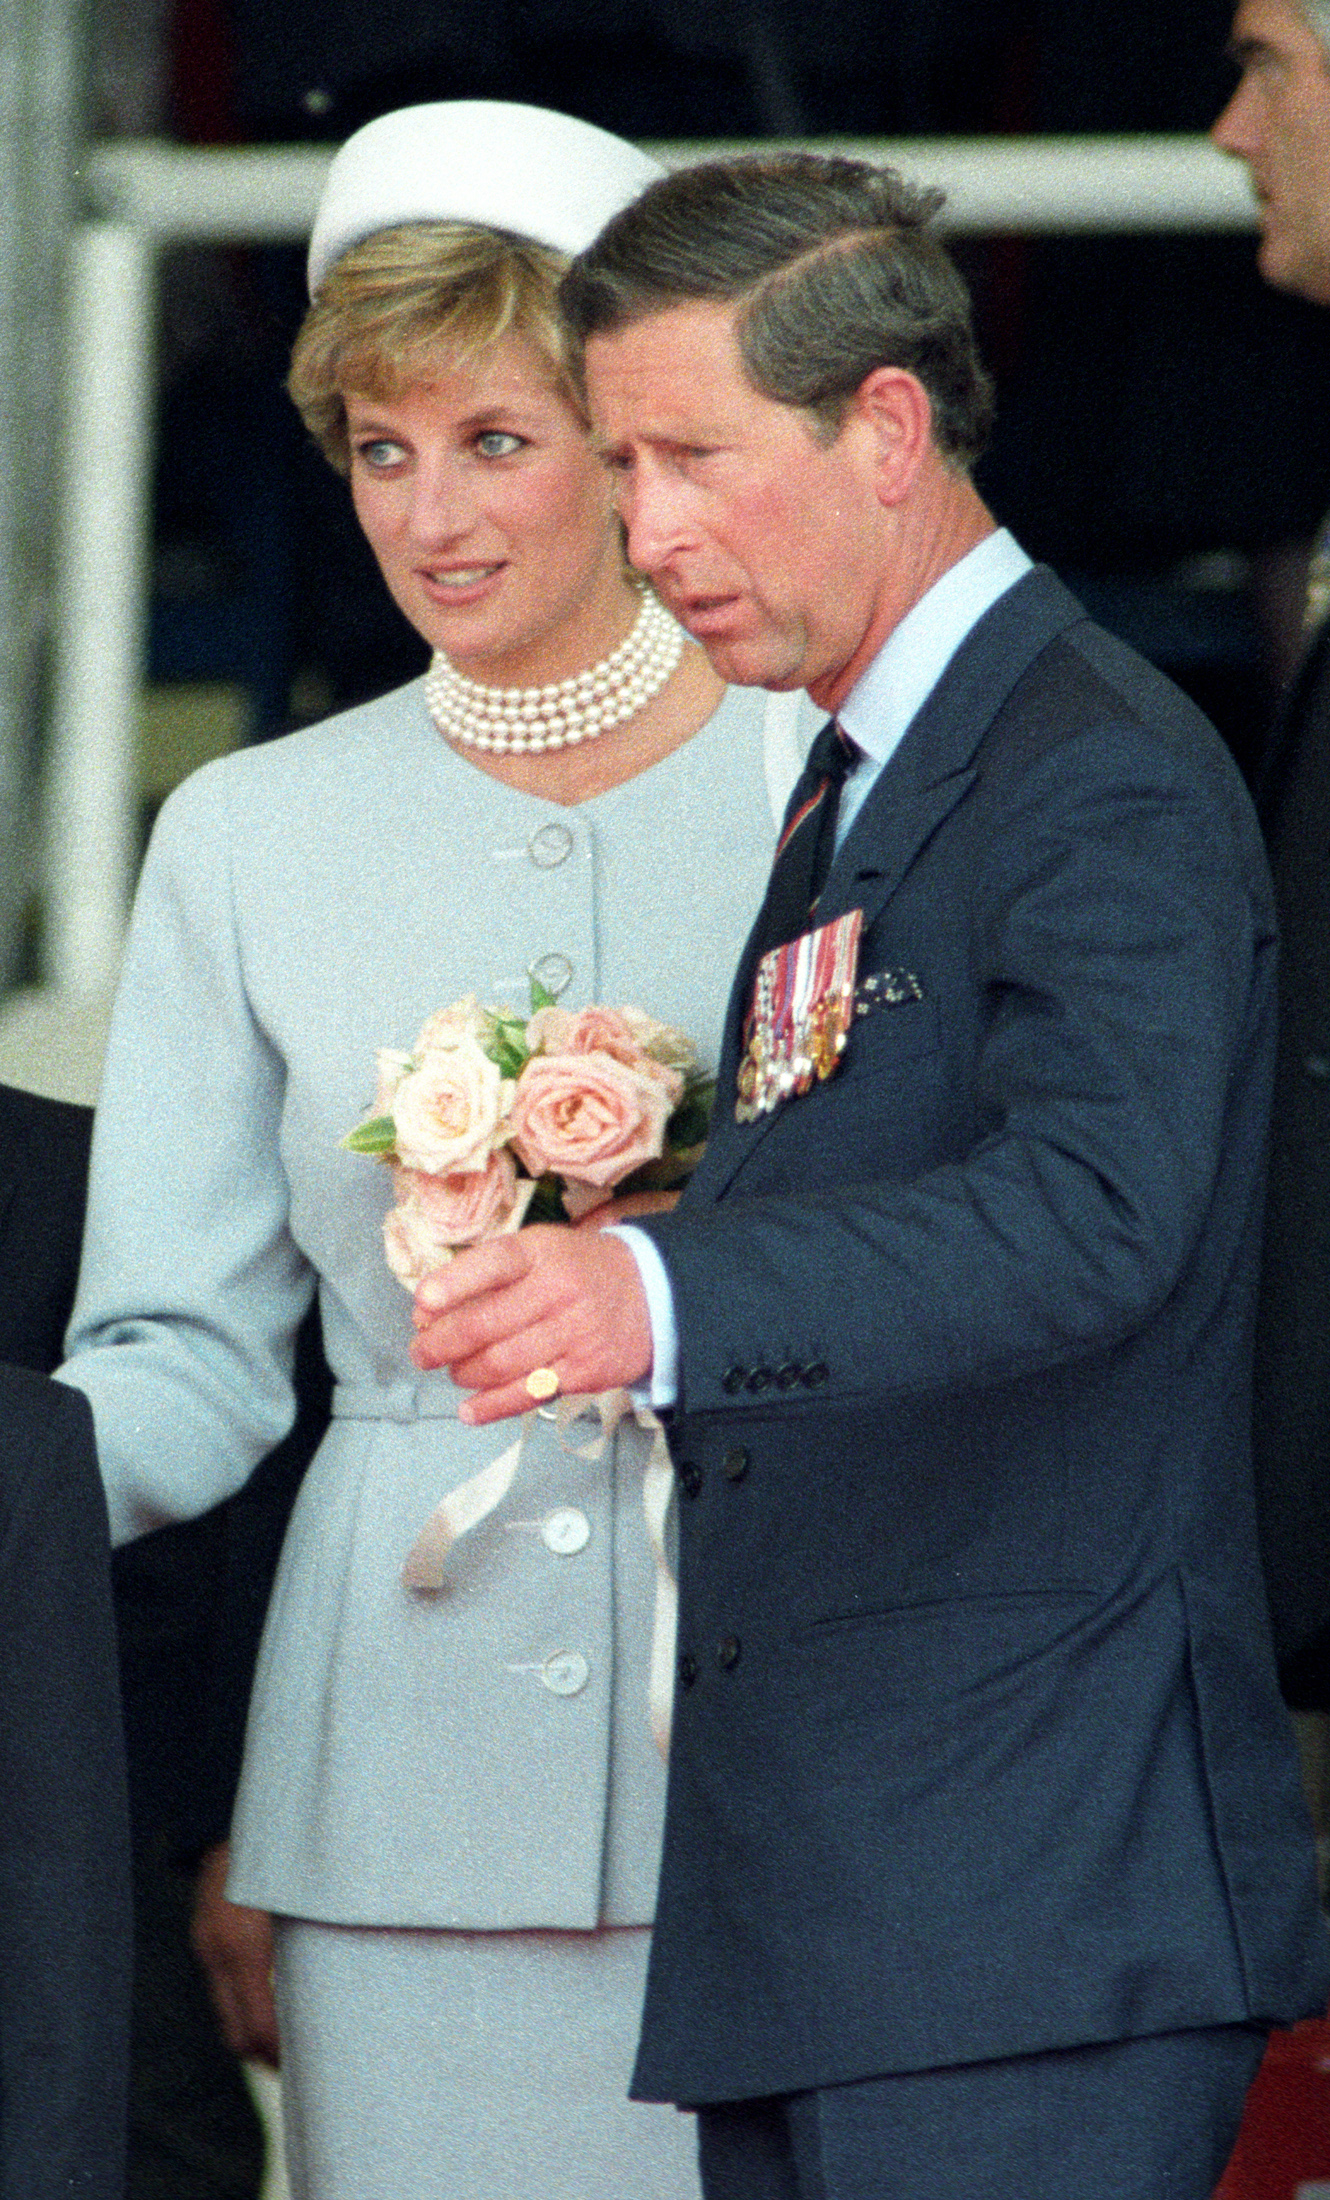 PRINCE CHARLES ESCORTS ESTRANGED PRINCESS DIANA AWAY FROM MAIN PODIUM DURING HEADS OF STATE CEREMONY IN HYDE PARK. Prince Charles escorts his estranged wife Princess Diana away from the main podium during the Heads of State Ceremony marking the 50th Anniversary of VE Day and London's Hyde Park, May 7, 1995. Heads of State from the nearly 60 countries gathered in the sweltering sun for festivities to remember Nazi Germany's defeat in World War II. SCANNED FROM NEGATIVE REUTERS/Dylan Martinez